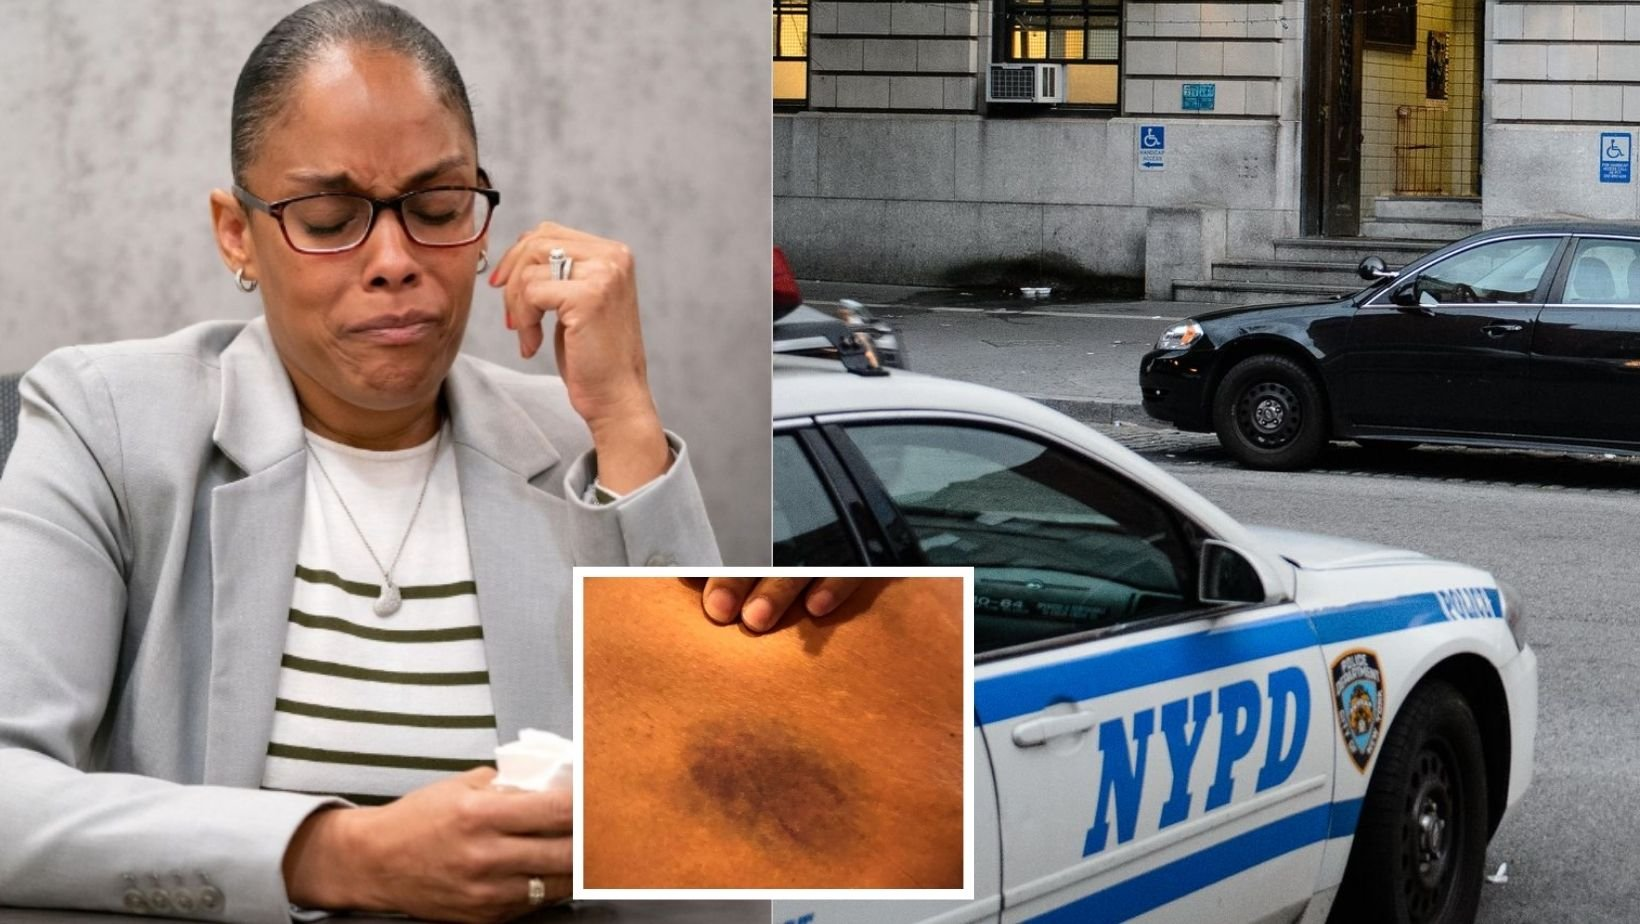 small joys thumbnail 2 6.jpg?resize=412,232 - Ex-NYPD Cop Claims She Was R*ped By Co-Officers Until Her Genitals Were Deformed While Her Superiors Ignored Her Cry For Help